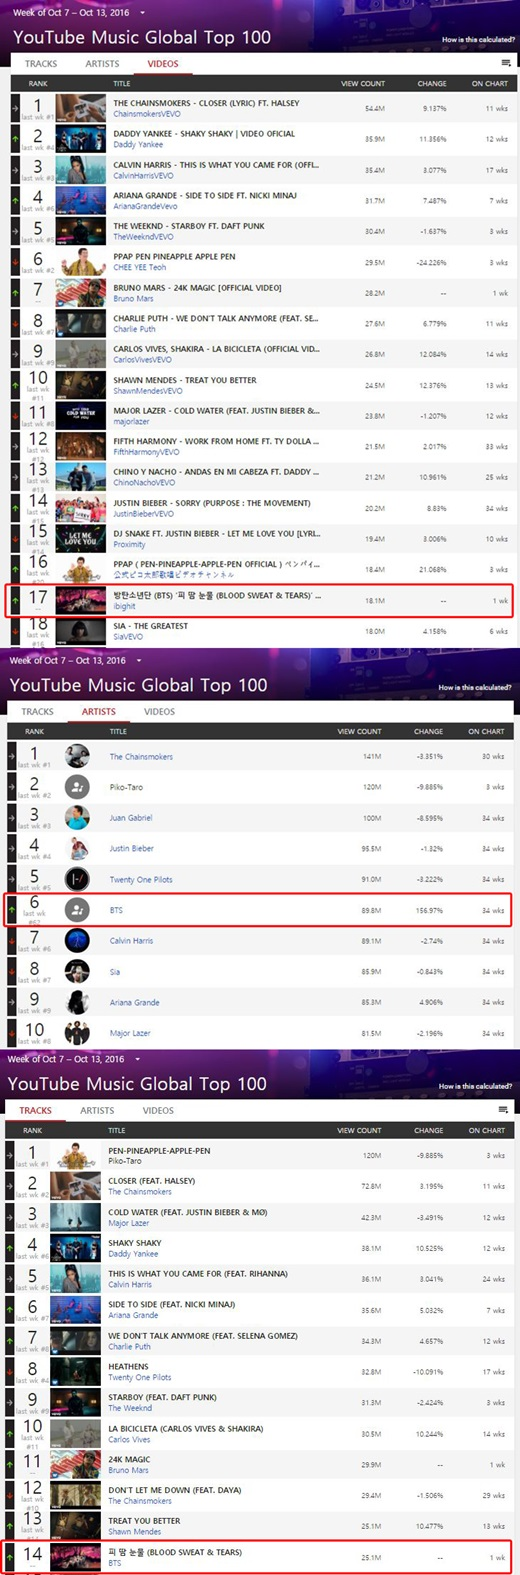 BTS Makes More Achievements On YouTube Music Global Top